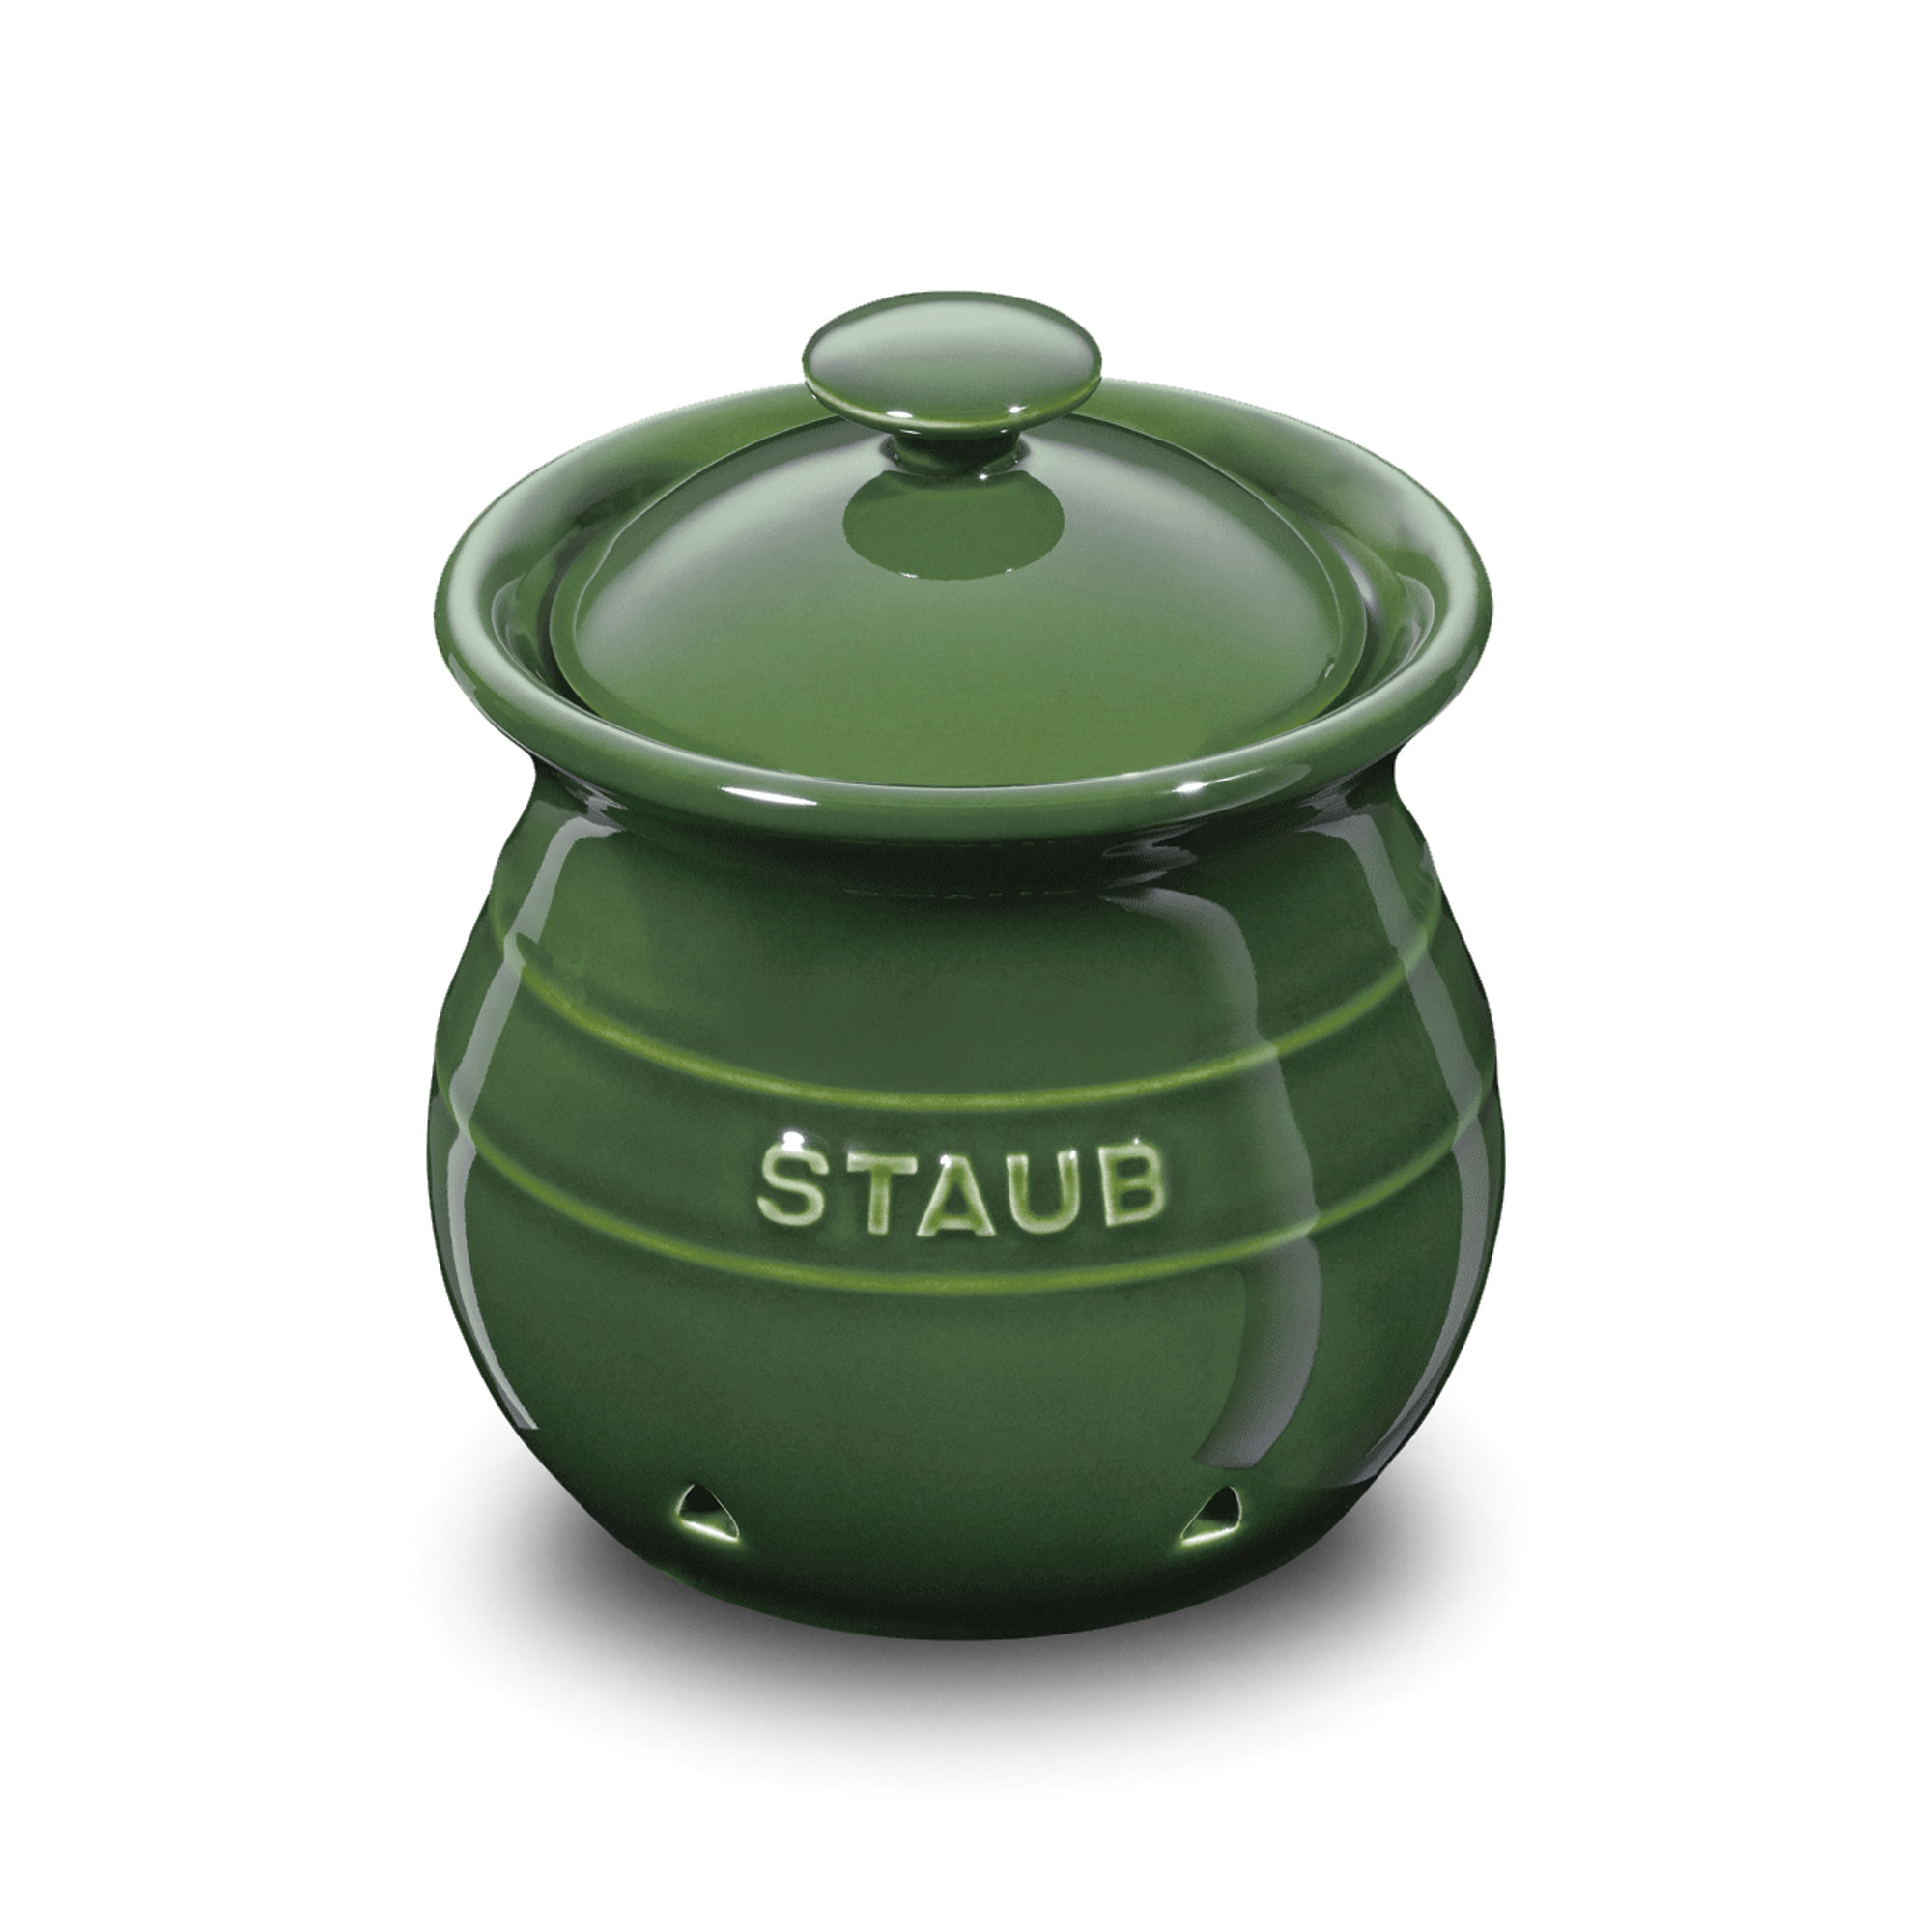 Staub Ceramic Garlic Keeper 4 Inch Basil Cutlery And More